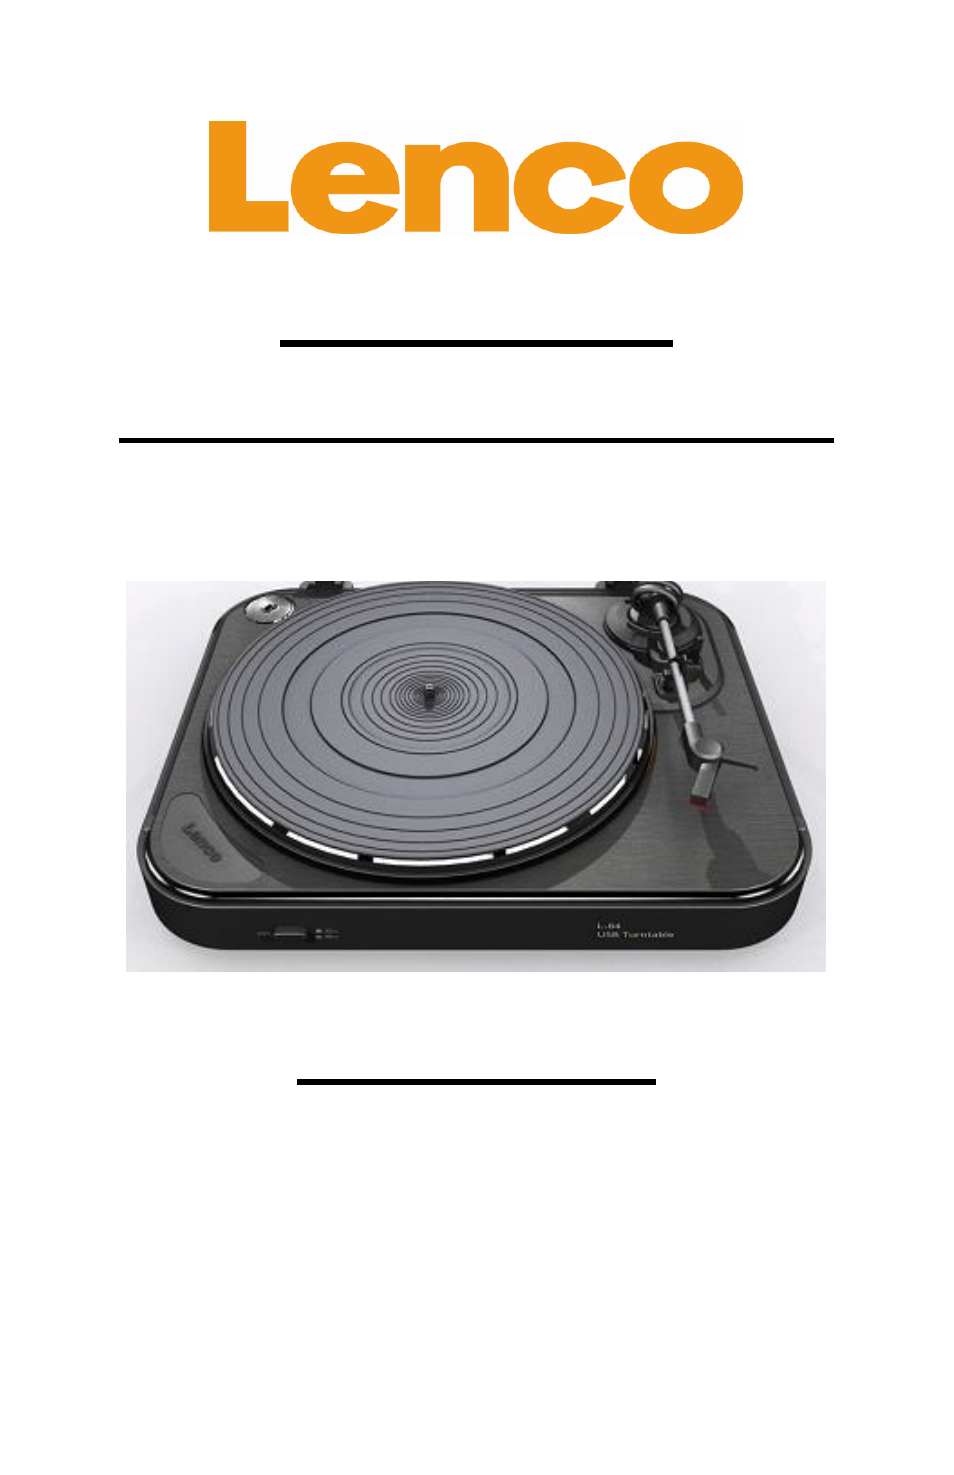 Lenco L-84 USB Record Player with USB Connection